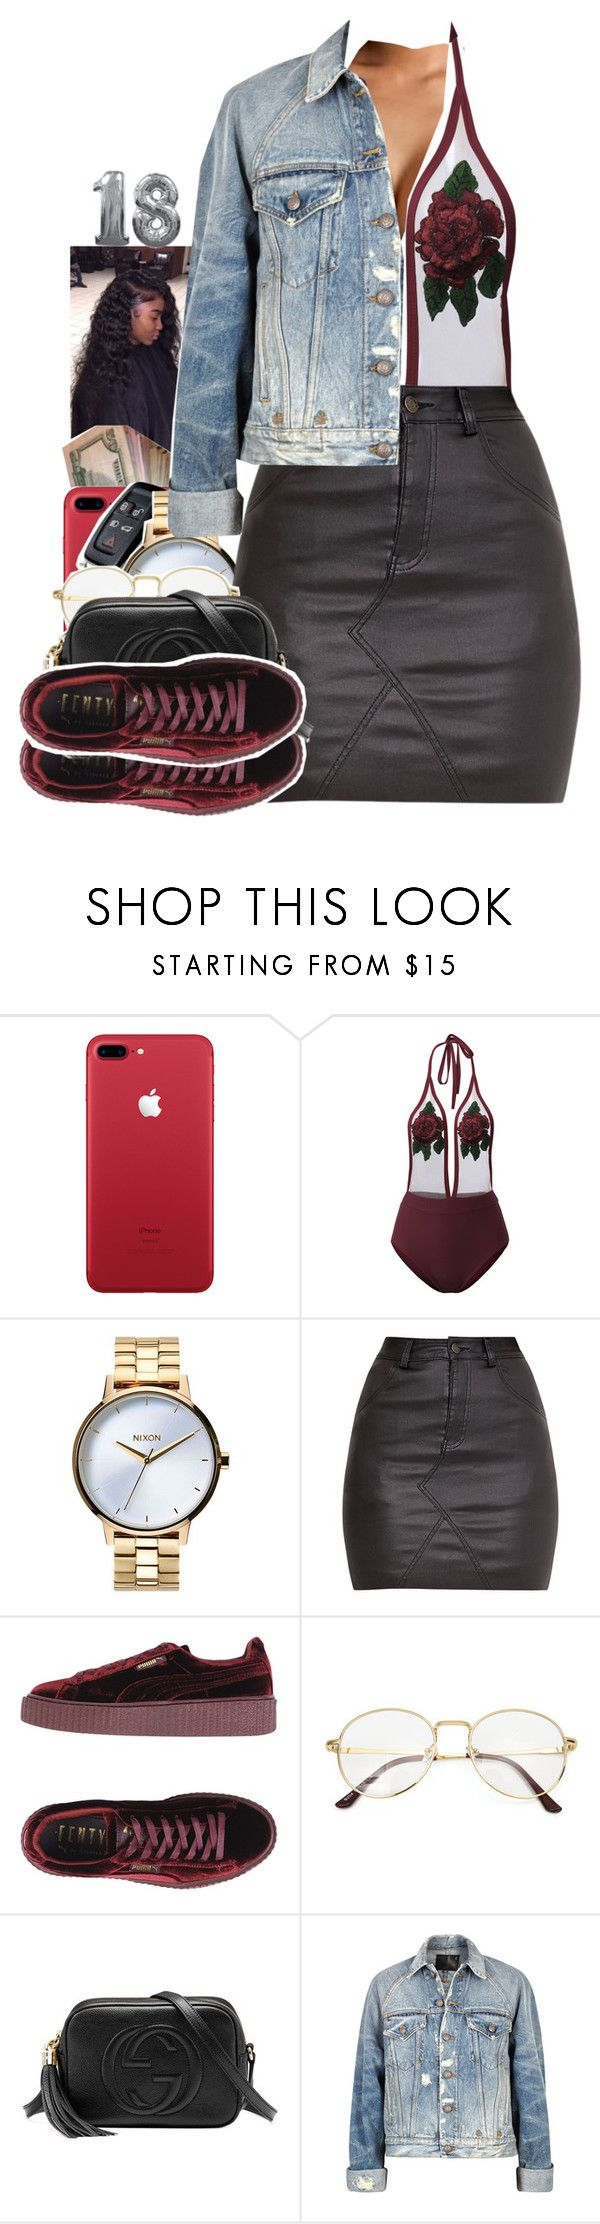 """""""18th birthday set for @selfmadee"""" by txoni ❤ liked on Polyvore featuring Nixon, Puma, Gucci and R13"""